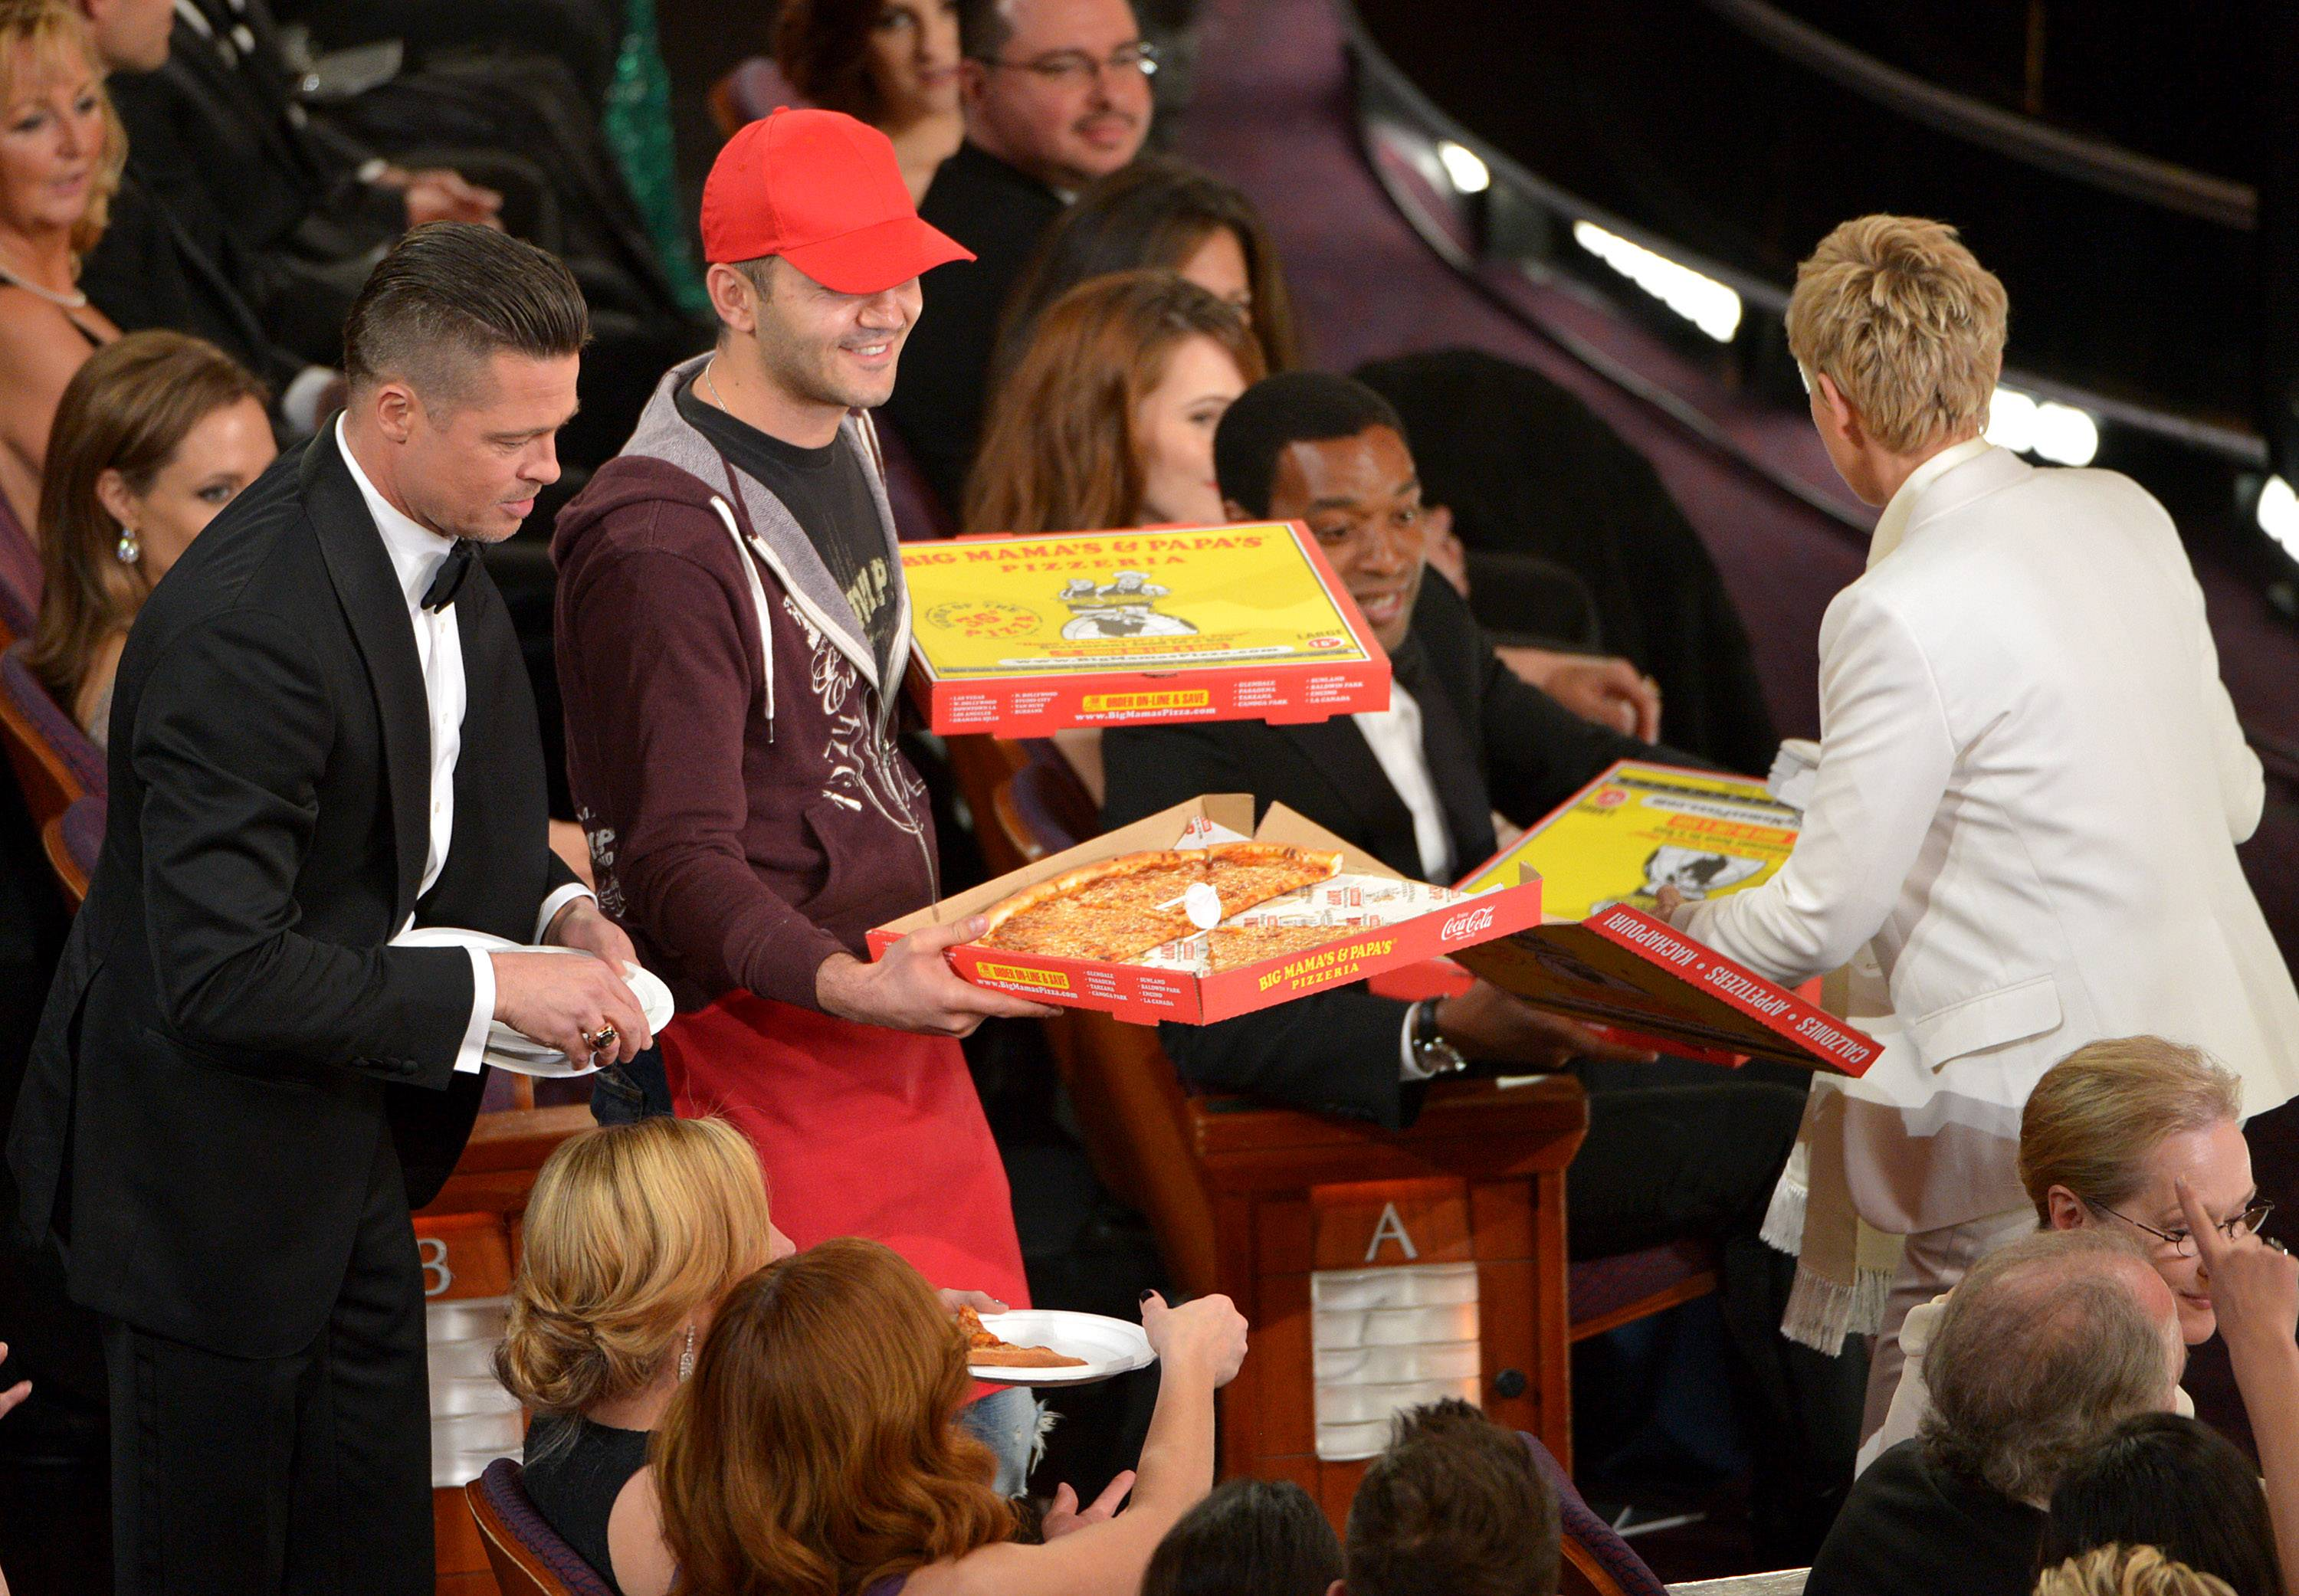 Brad Pitt, left, and Ellen DeGeneres, right, pass out pizza in the audience during the Oscars.